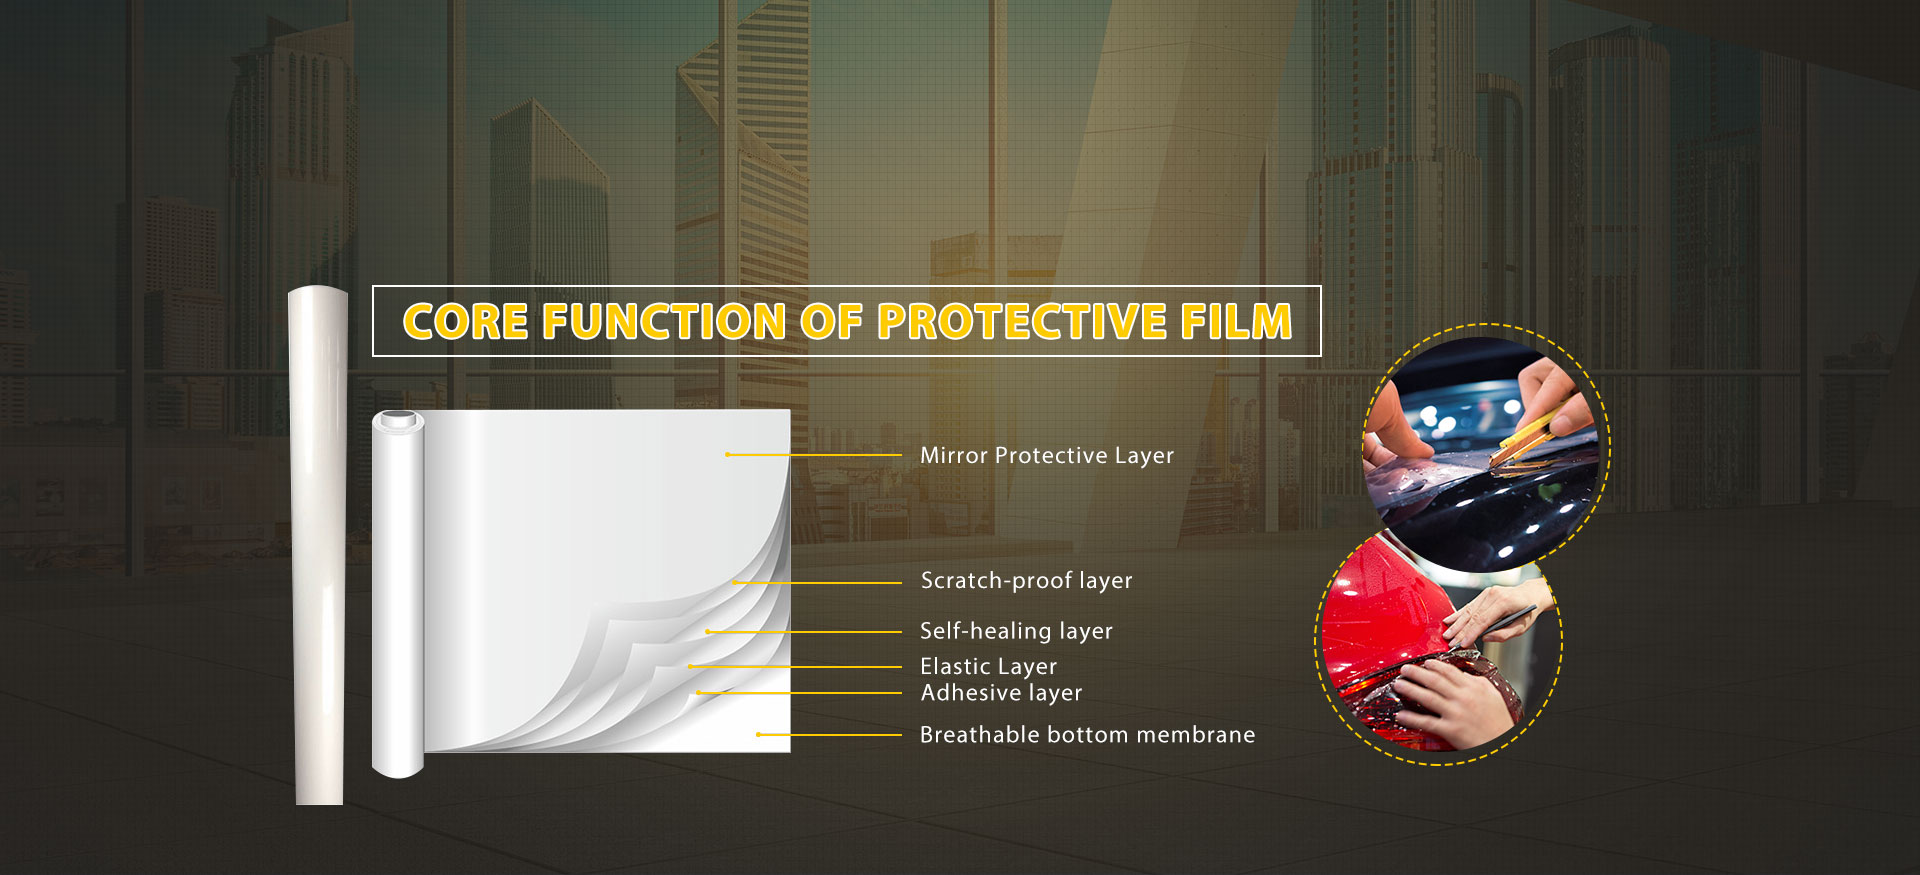 Core function of protective film